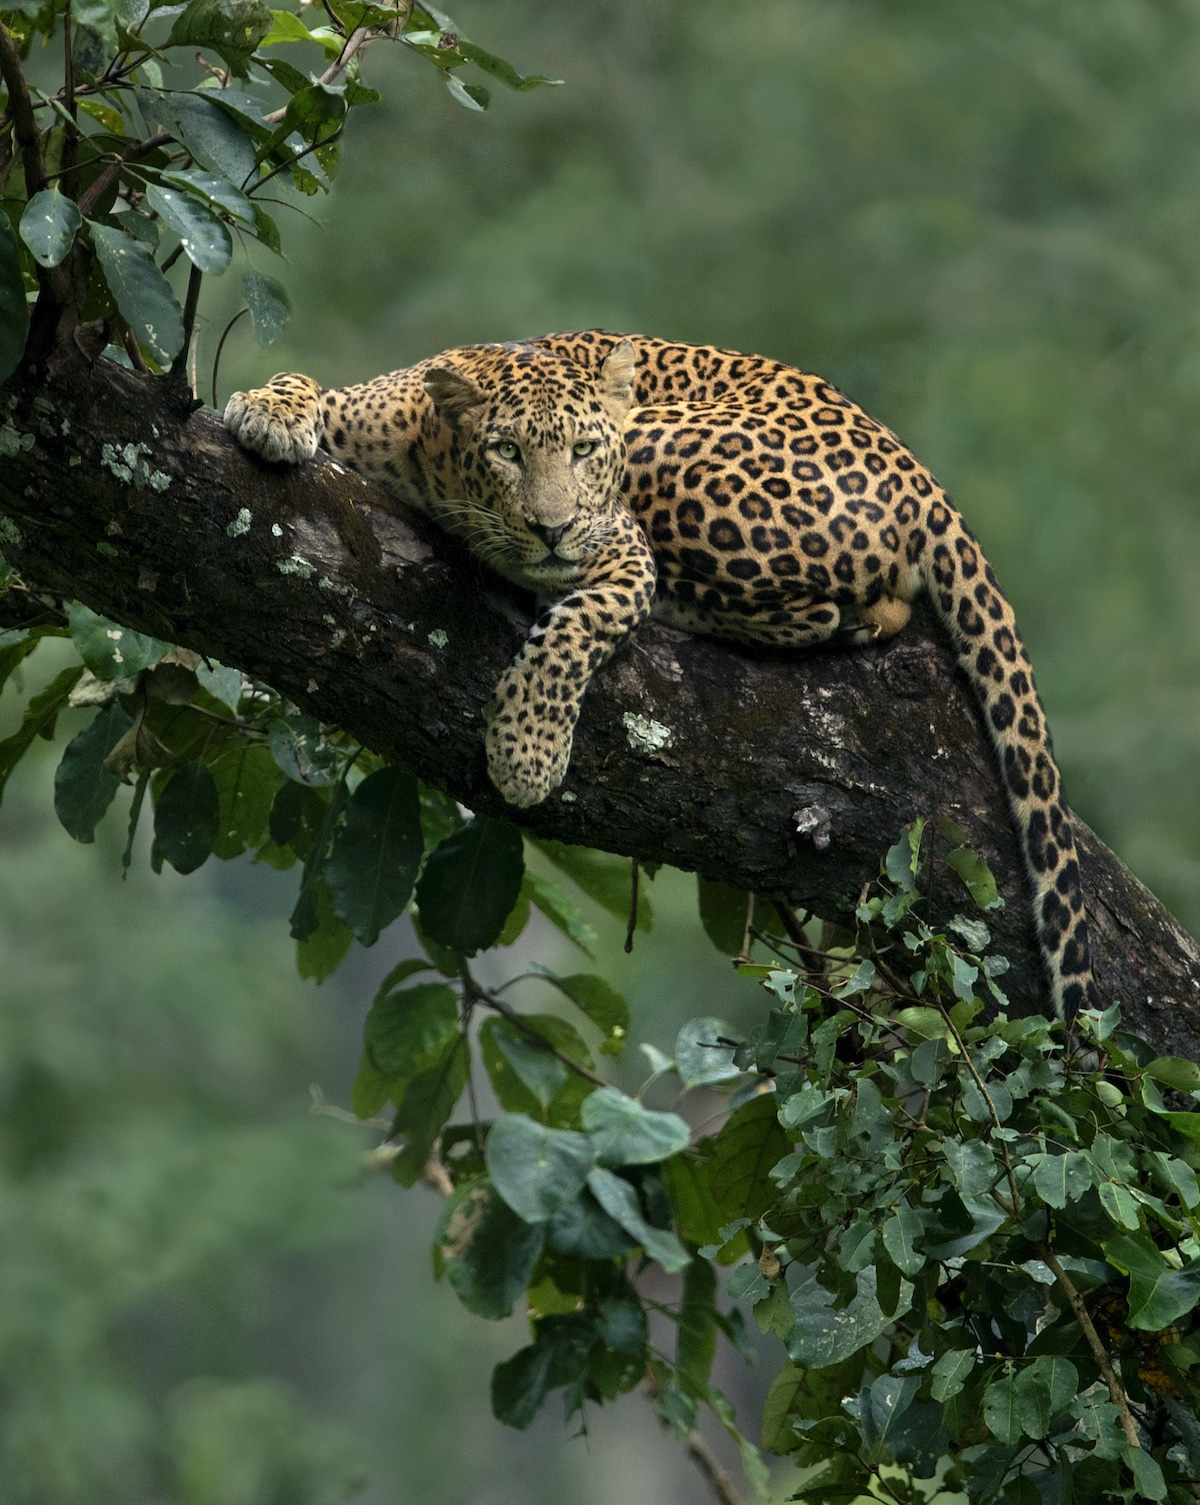 Leopard in a Tree in India